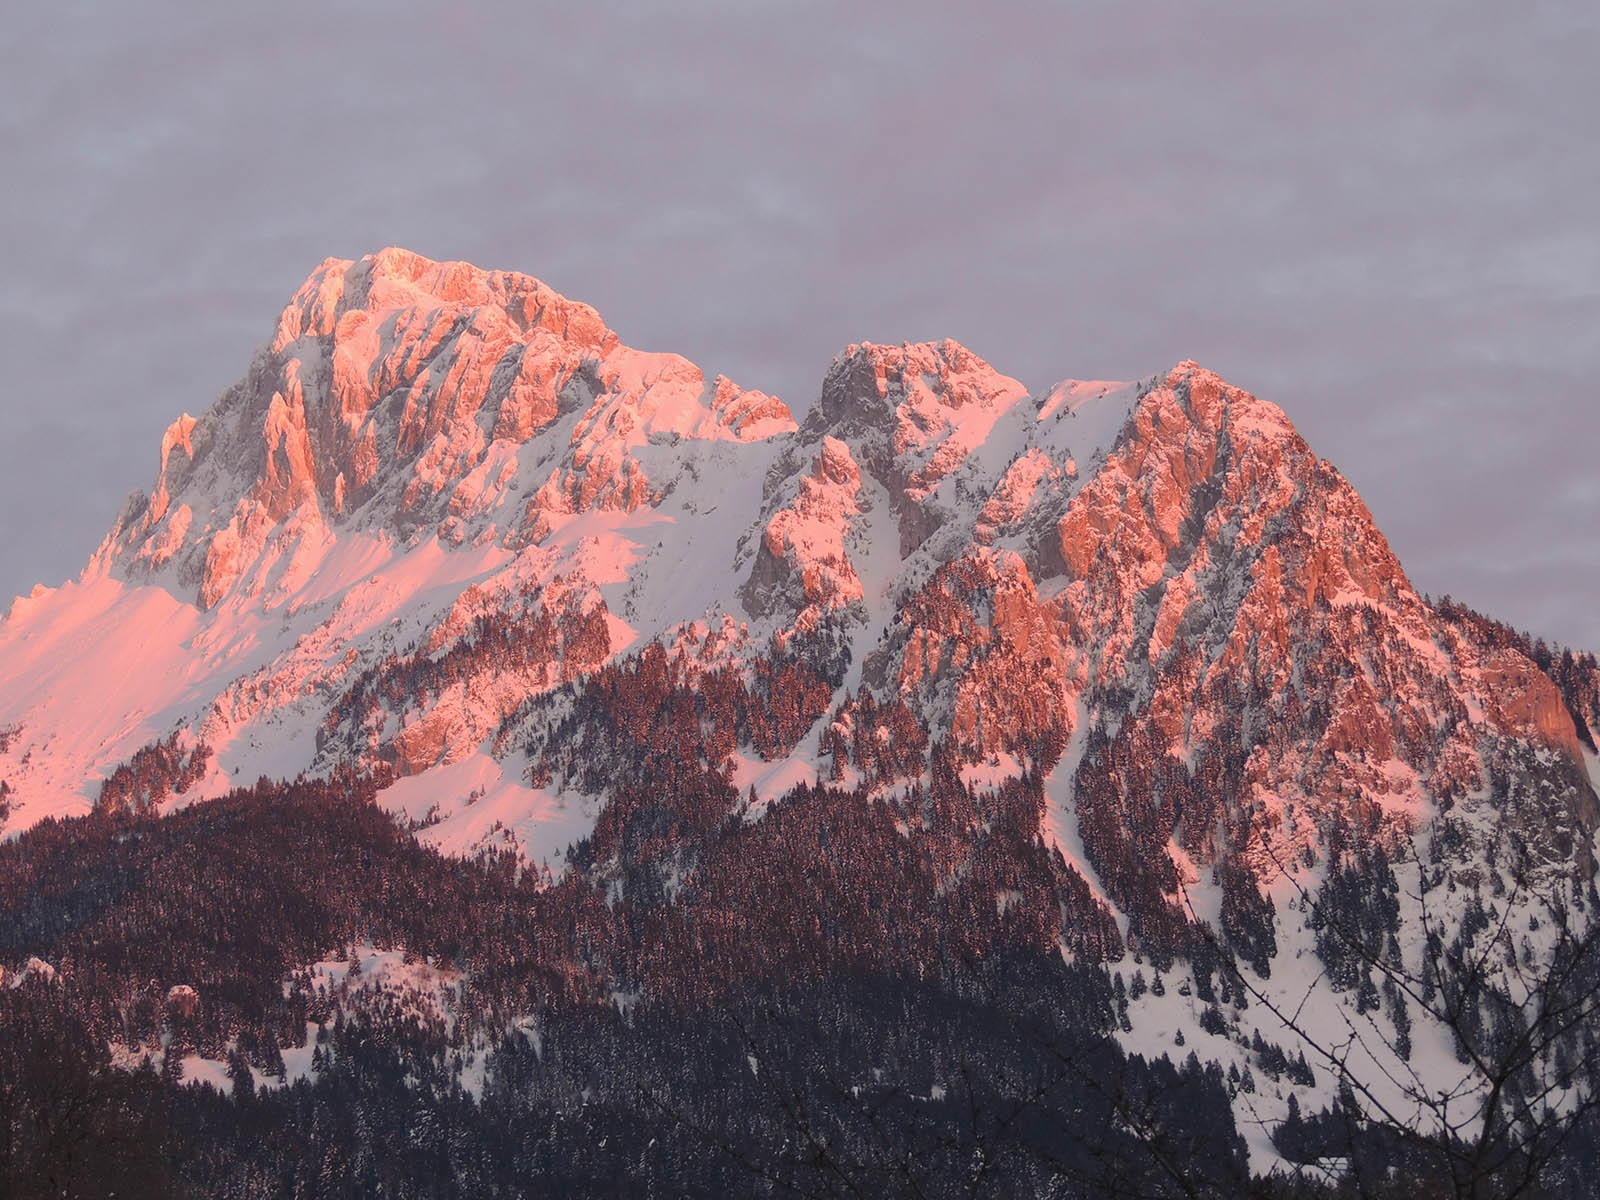 Sunset Light Reflected on Snowy Mountains near Hotel Les Gentian